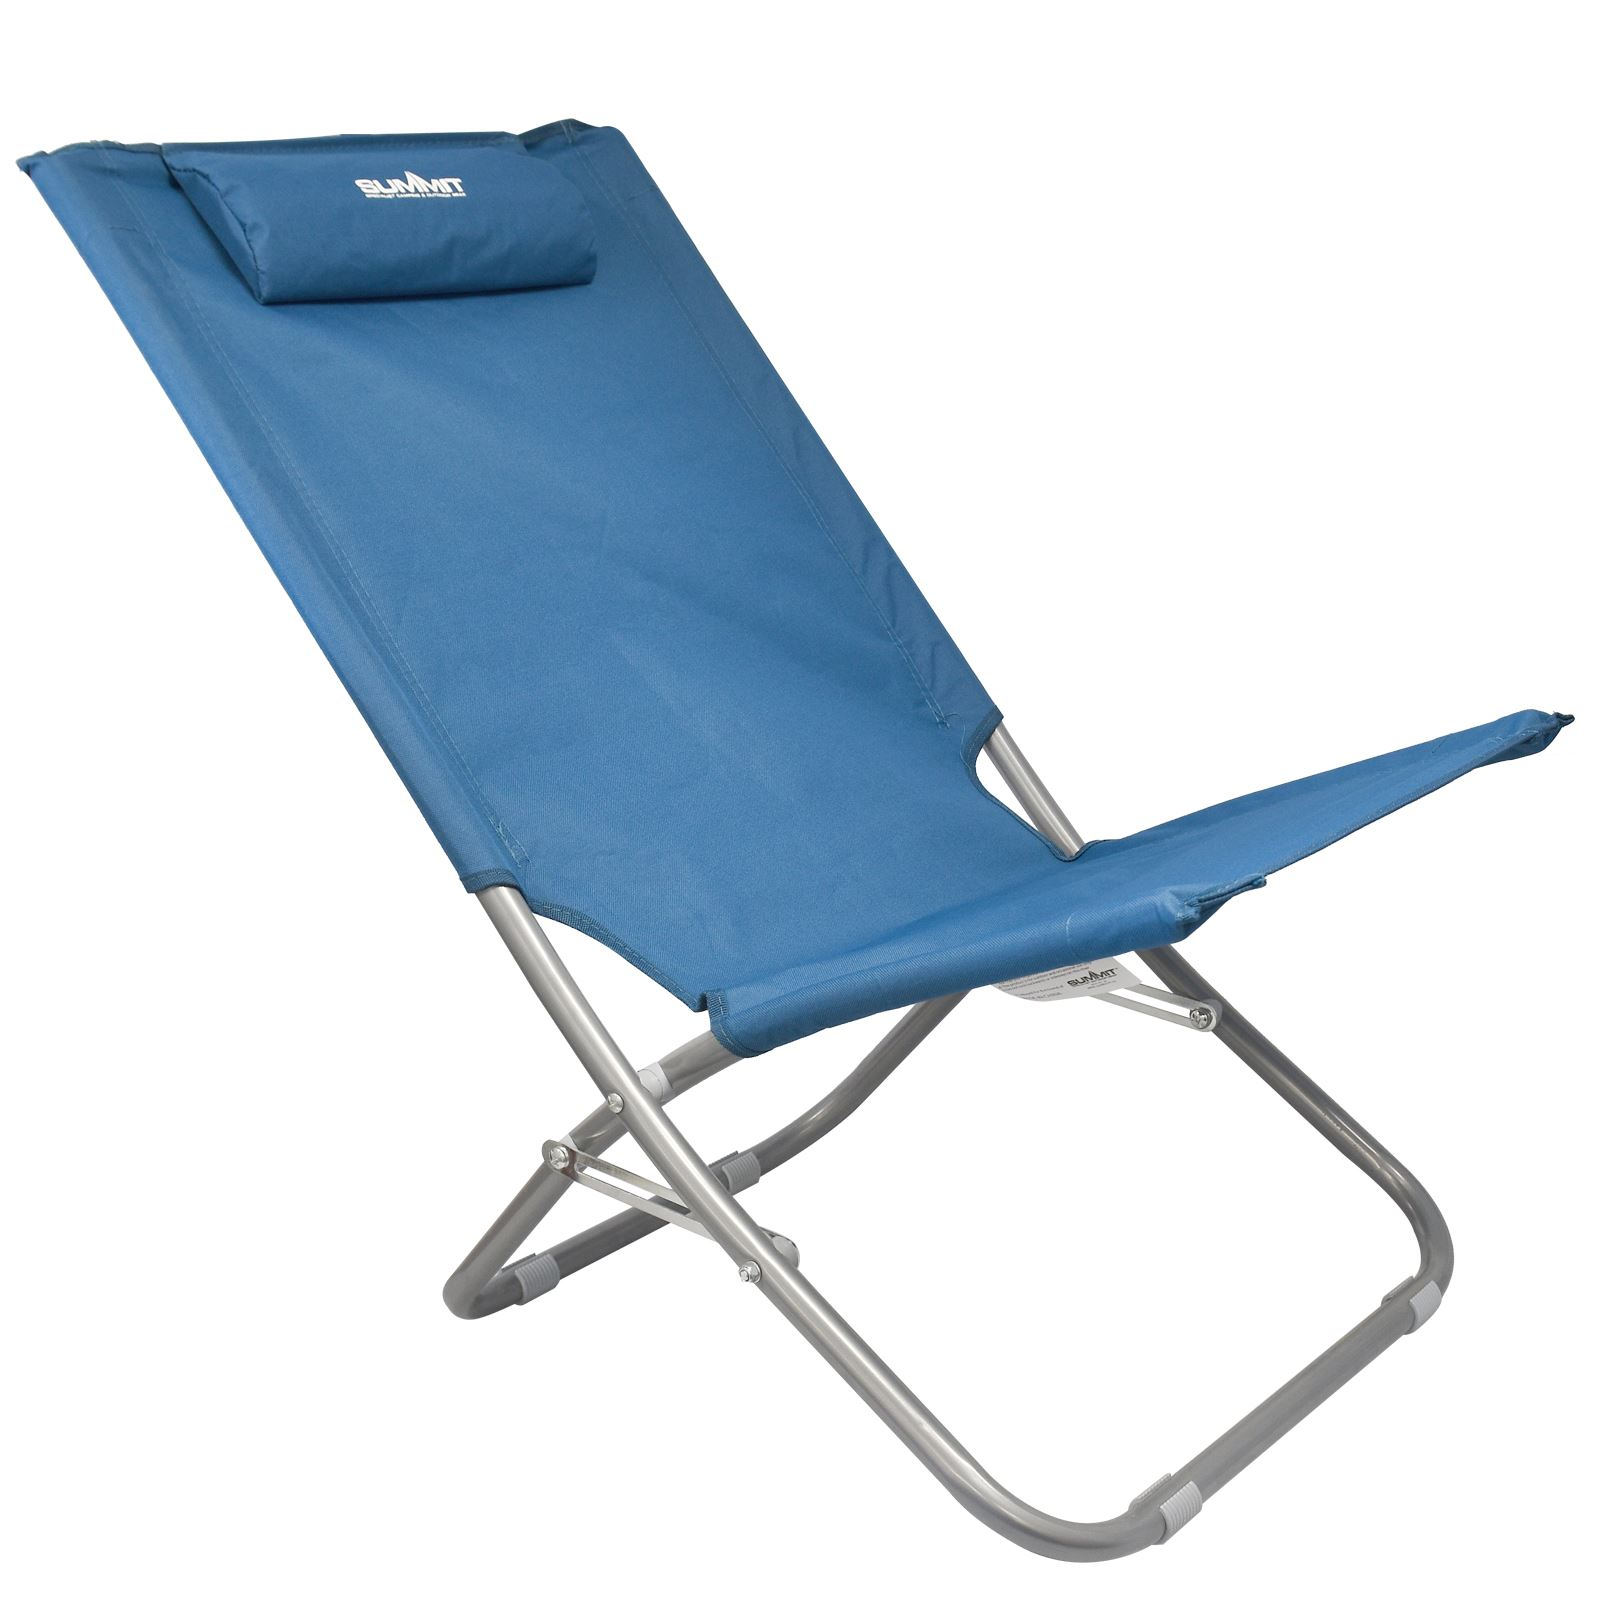 Folding Lounge Beach Chair Summit Relaxer Folding Maderia Sun Lounger Lightweight